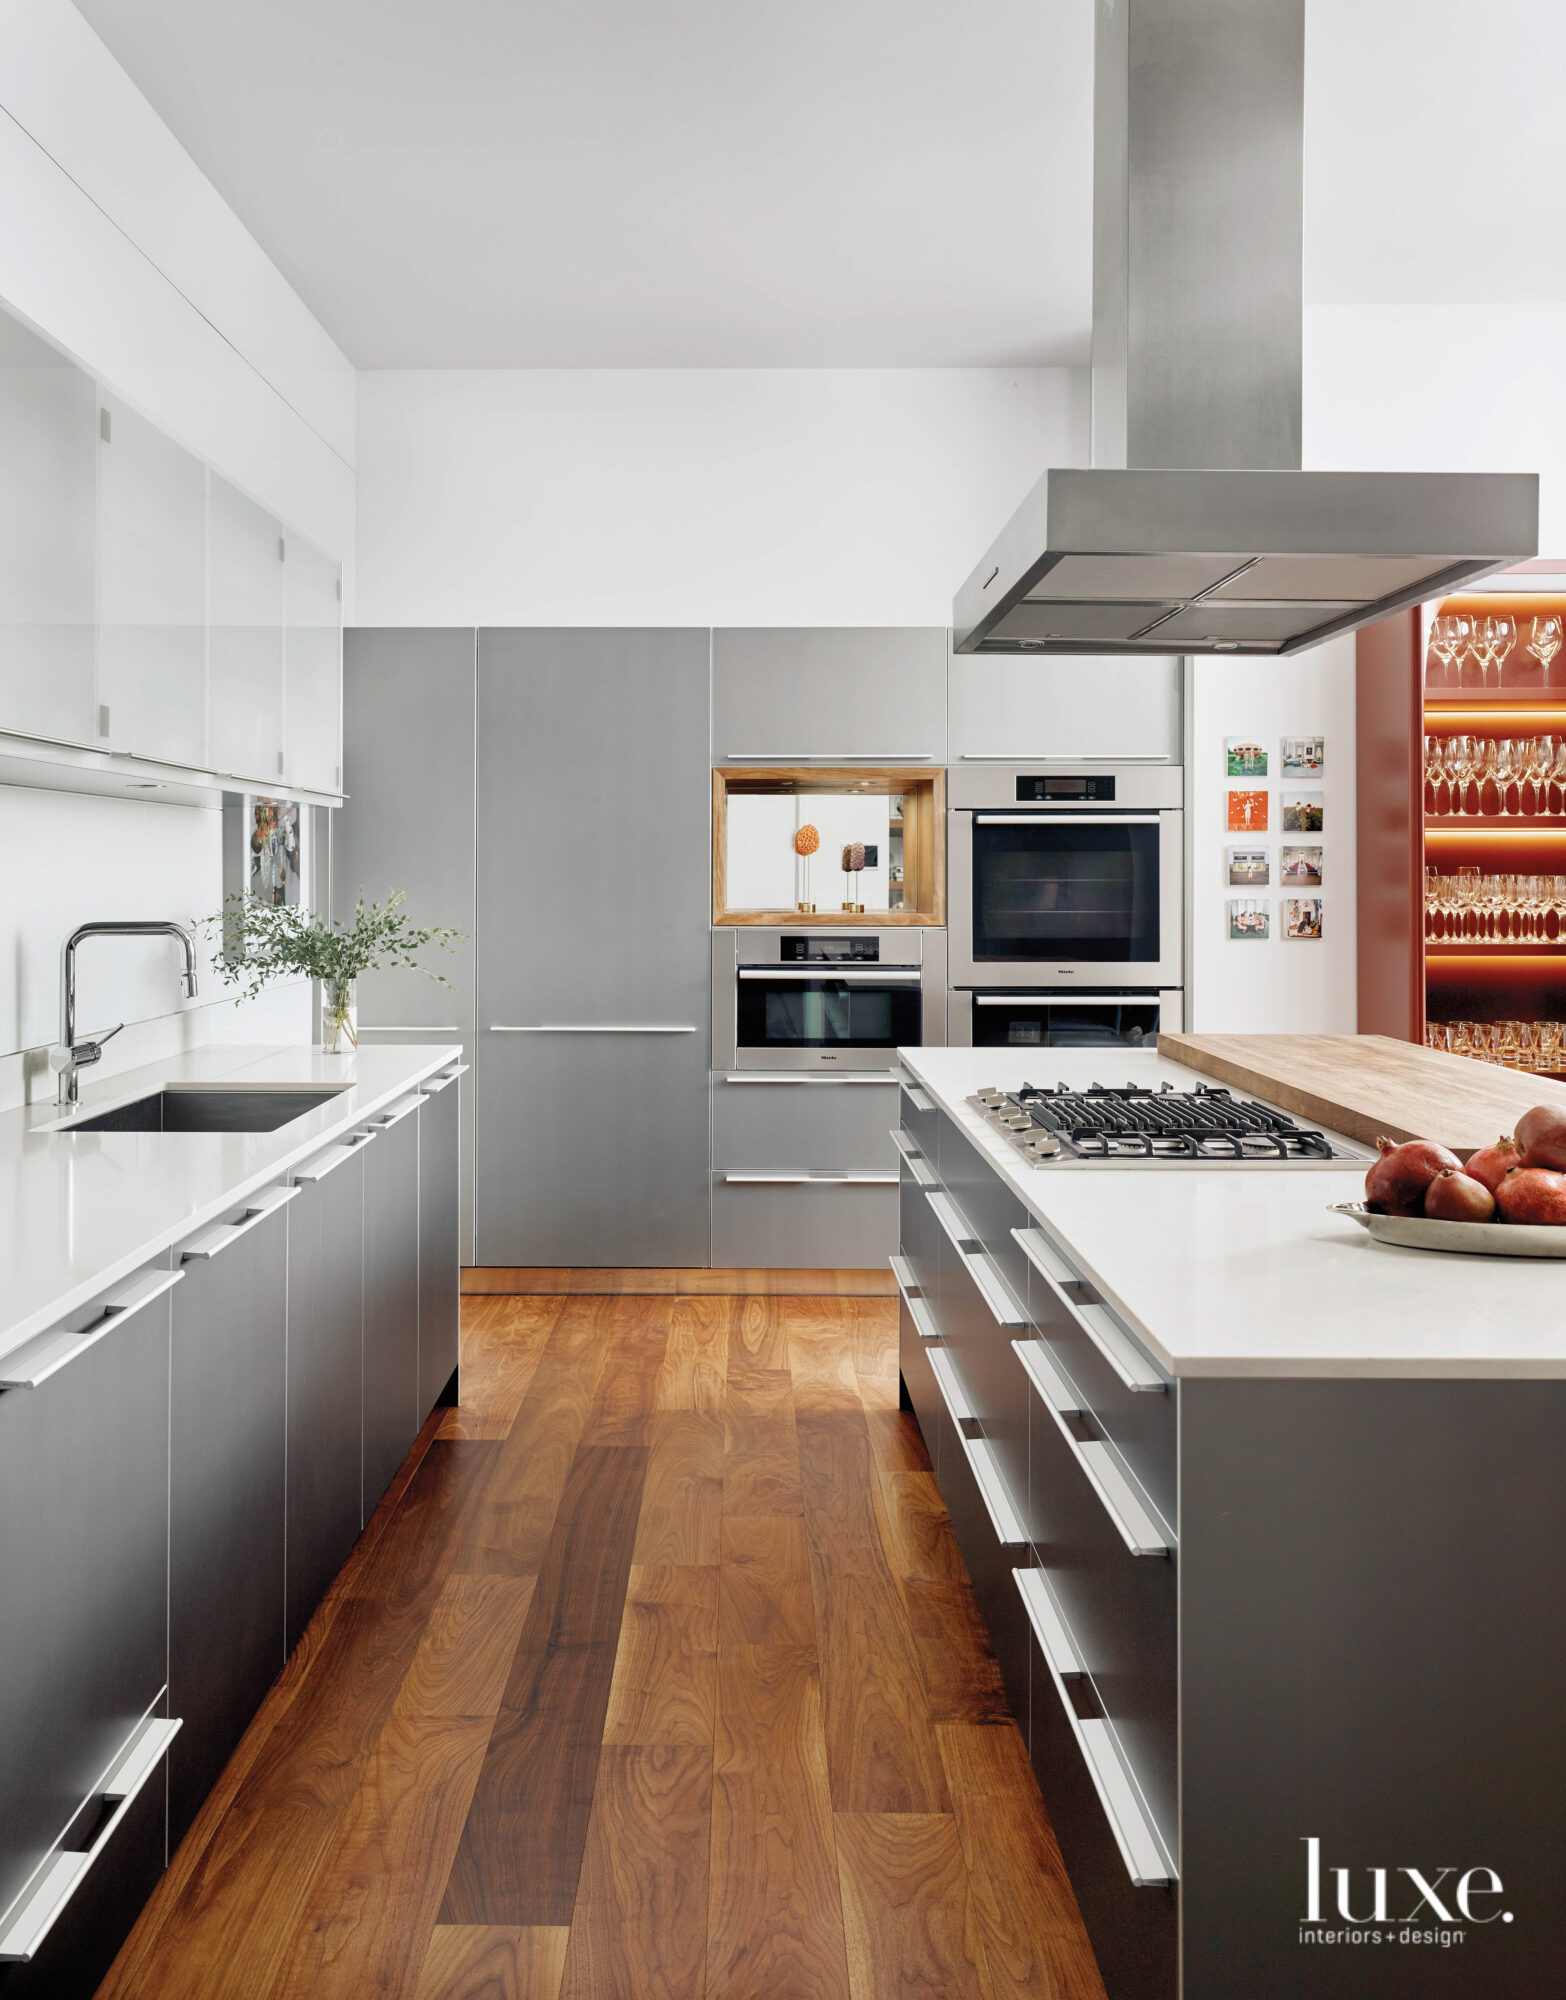 Sleek kitchen with Bulthaup cabinetry.